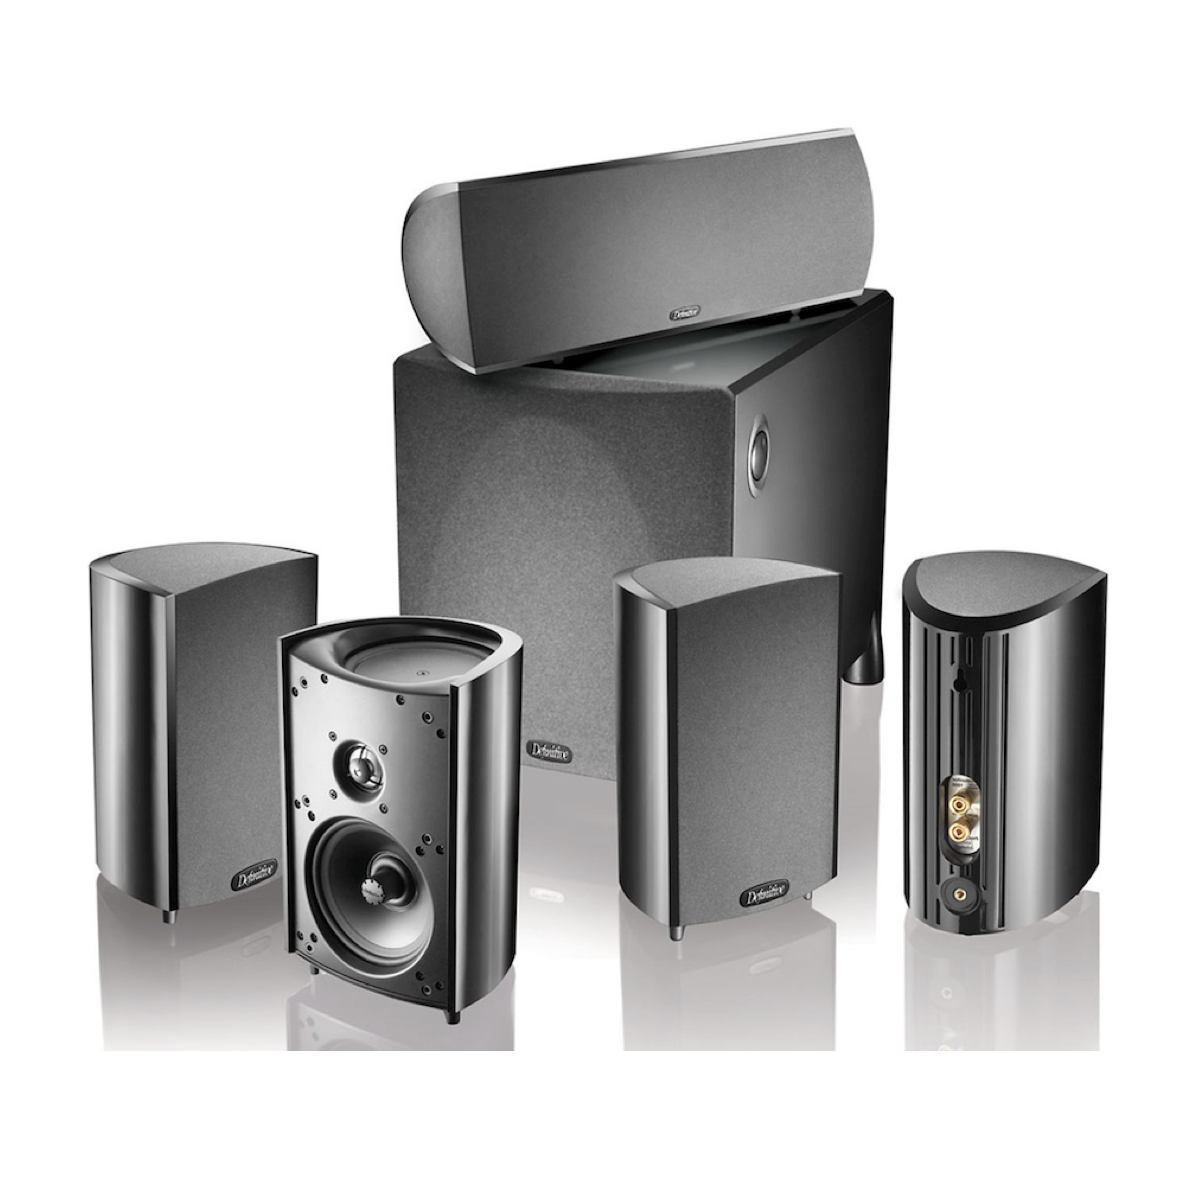 Definitive Technology ProCinema 800 - 5.1 Channel Home Theater Speaker System, Definitive Technology, Home Theatre Package - AVStore.in